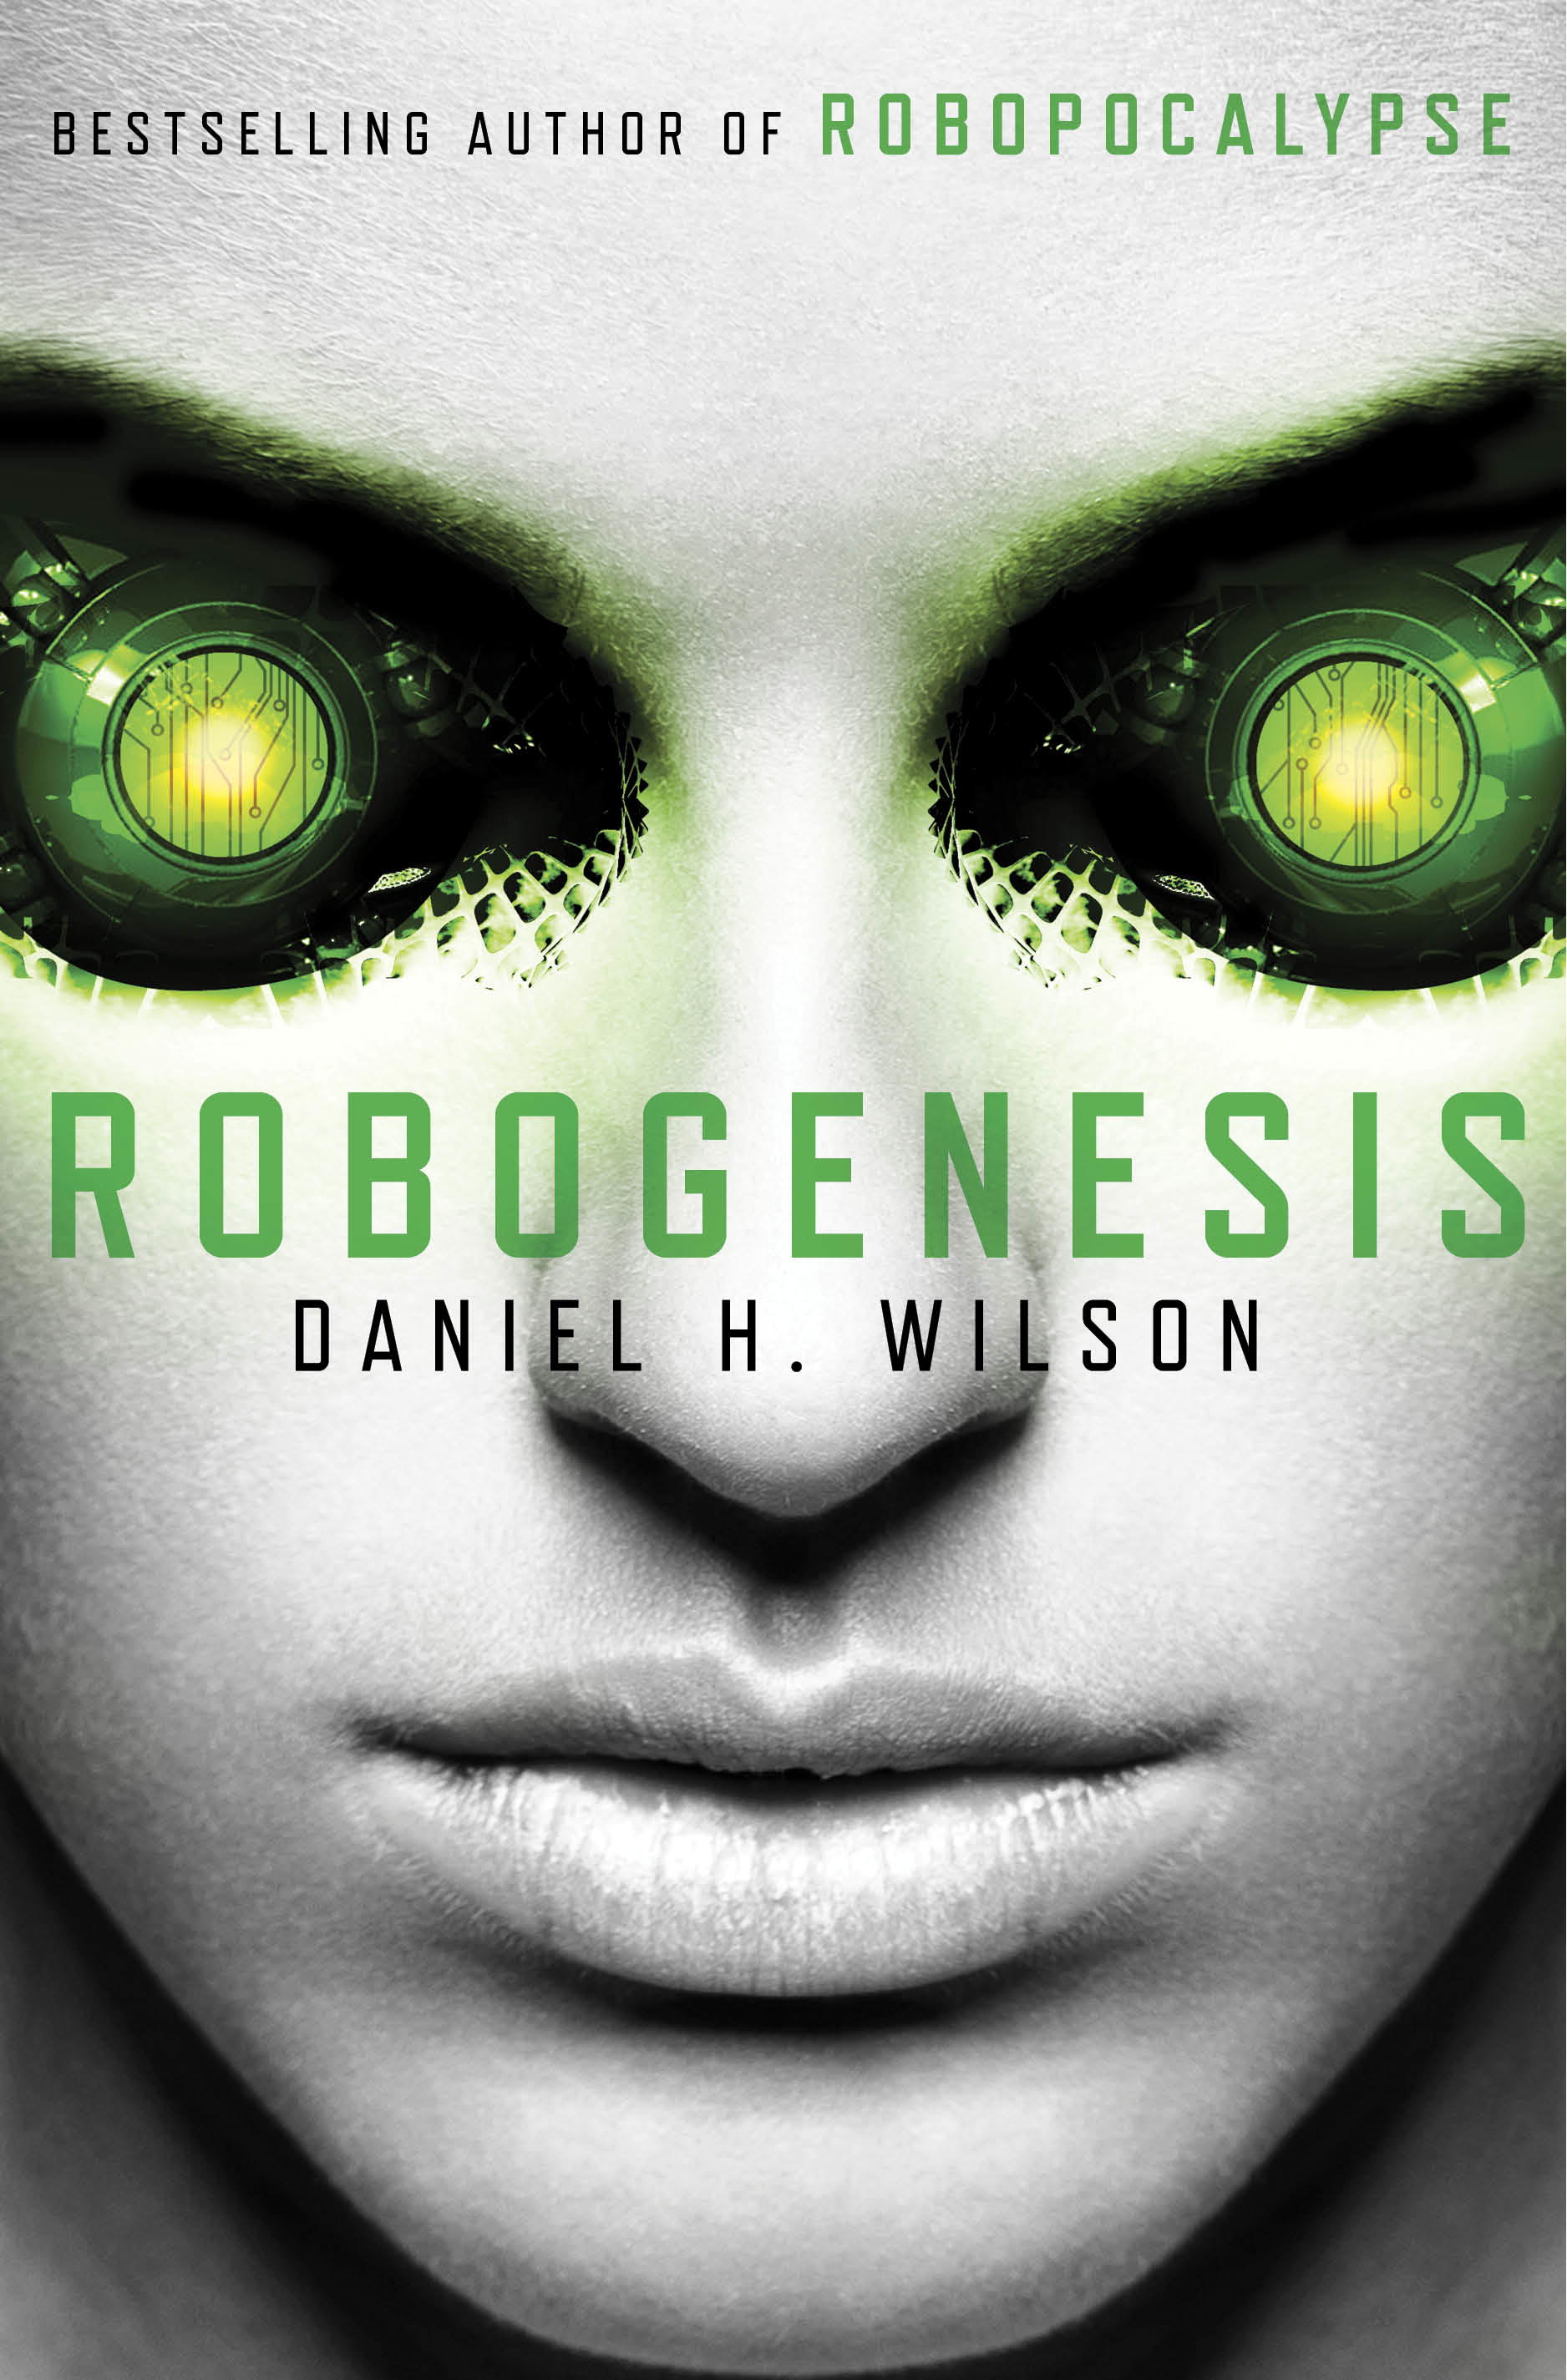 Daniel H. Wilson is the author of Robogenesis, standalone sequel to the bestselling Robopocalypse. Both novels explore a post-singularity world in which humankind struggles to survive as titanic AIs wage war on a colossal scale.